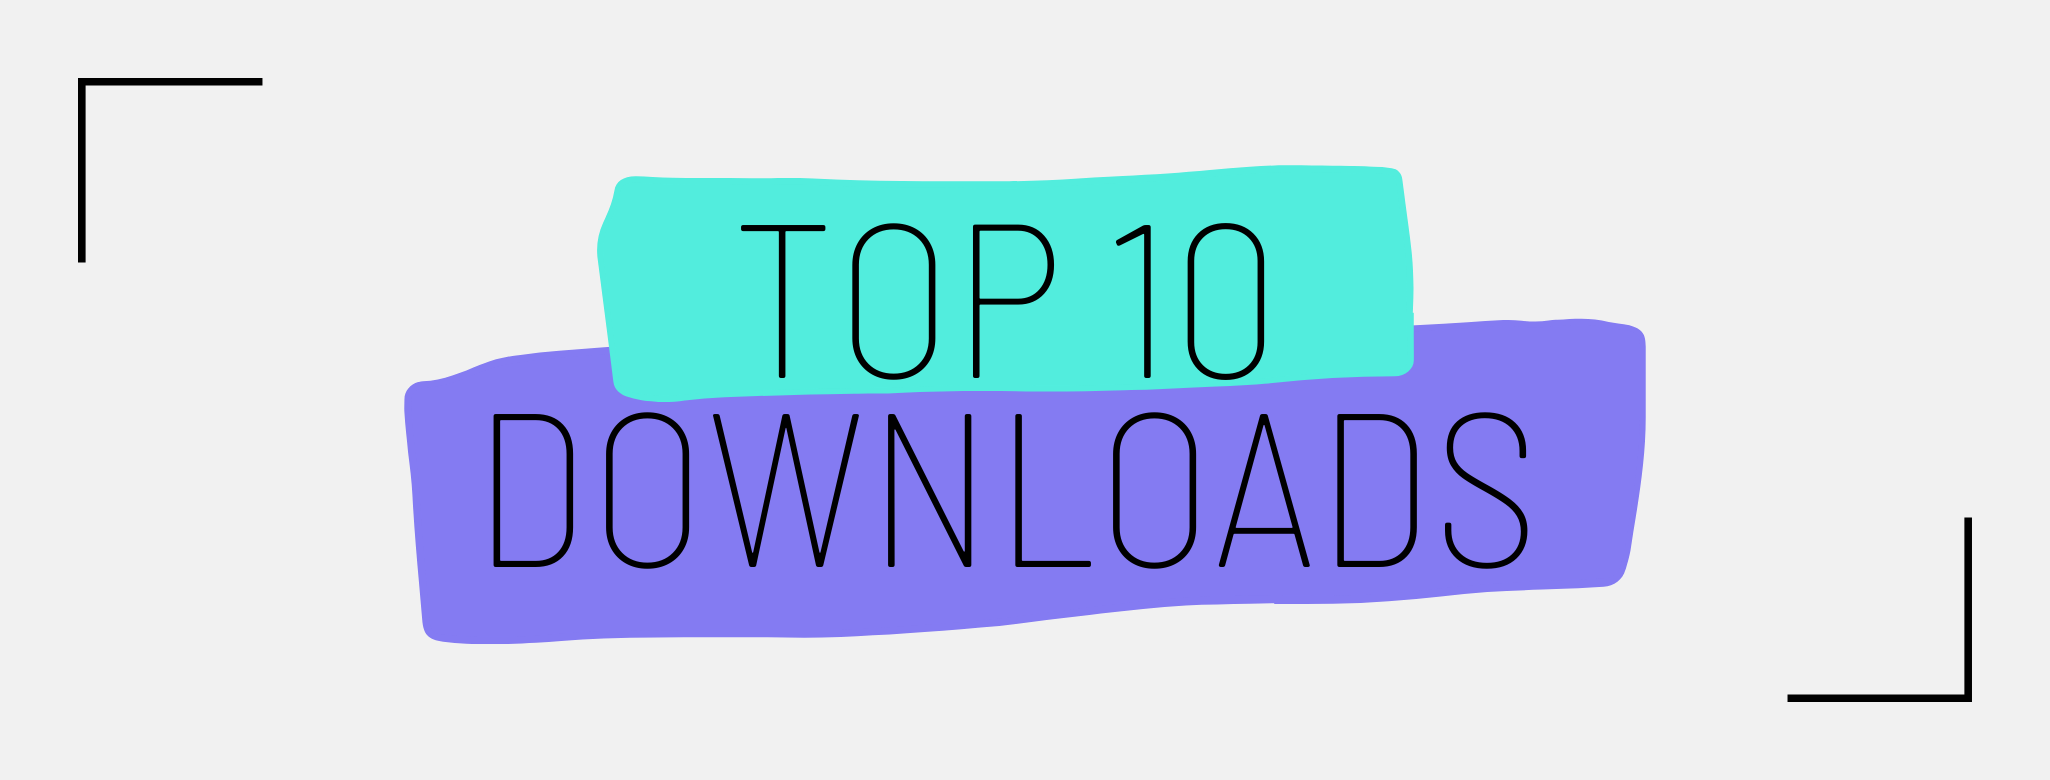 A rectangular image with text on top of green and purple blobs. Text reads Top 10 Downloads